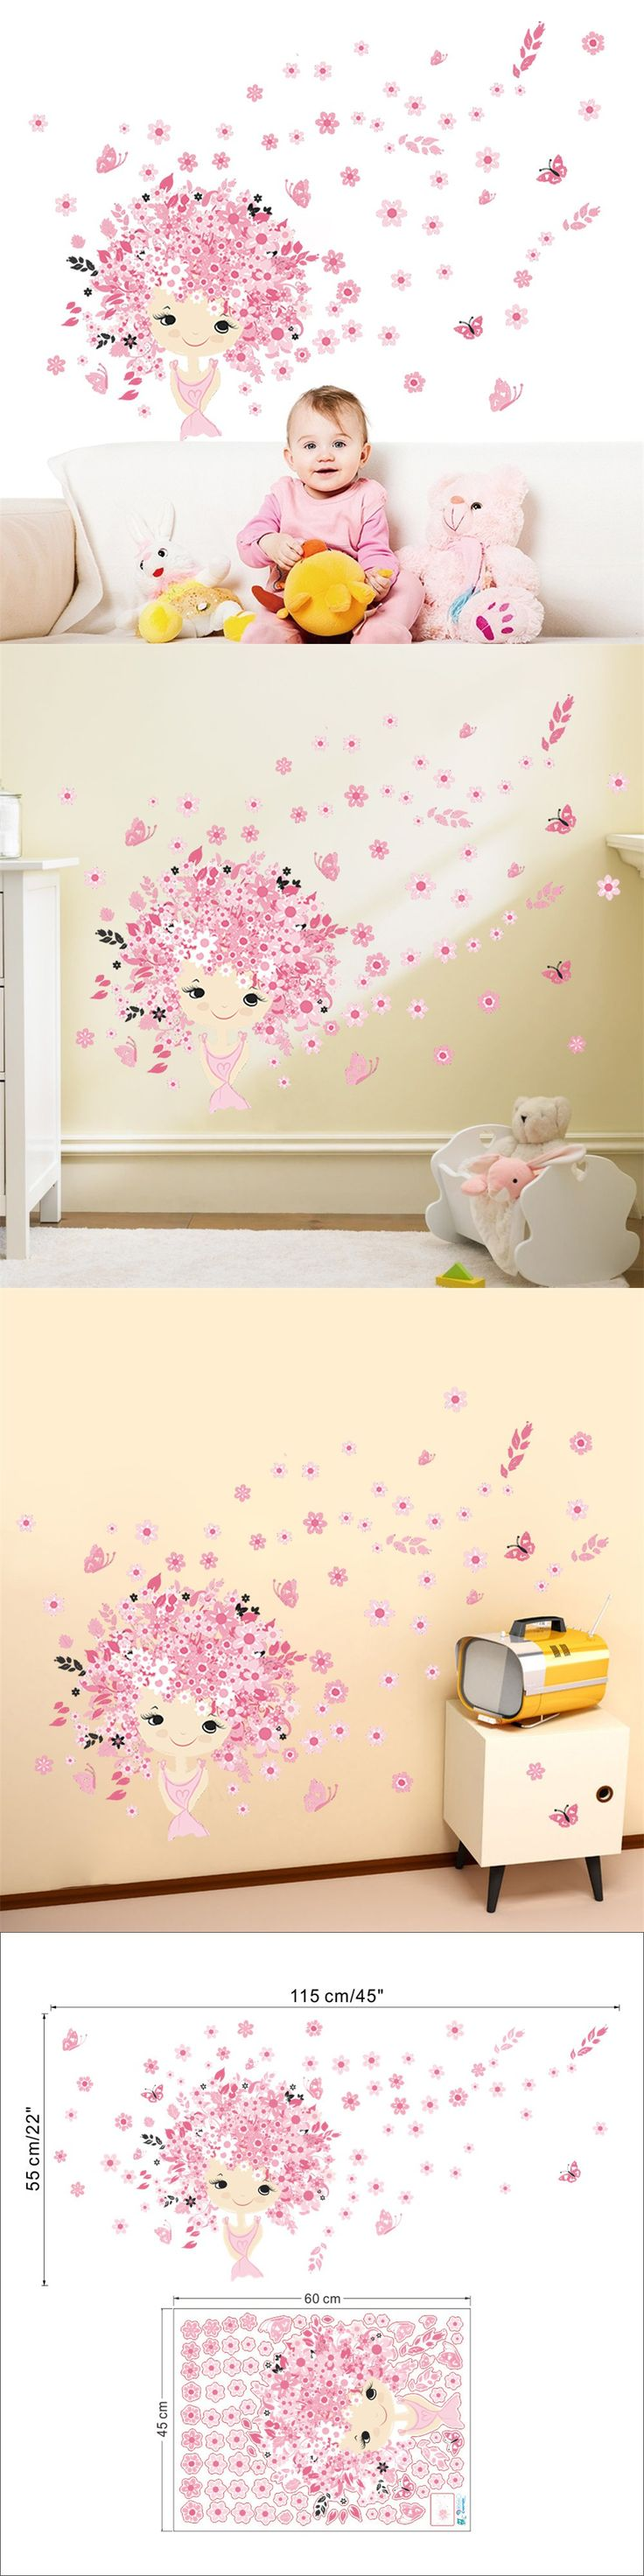 best 25 bedroom wall stickers ideas only on pinterest wall colorful flower flower fairy pink cute baby girl mermaid butterfly wall sticker home decor living room bedroom wall art gifts